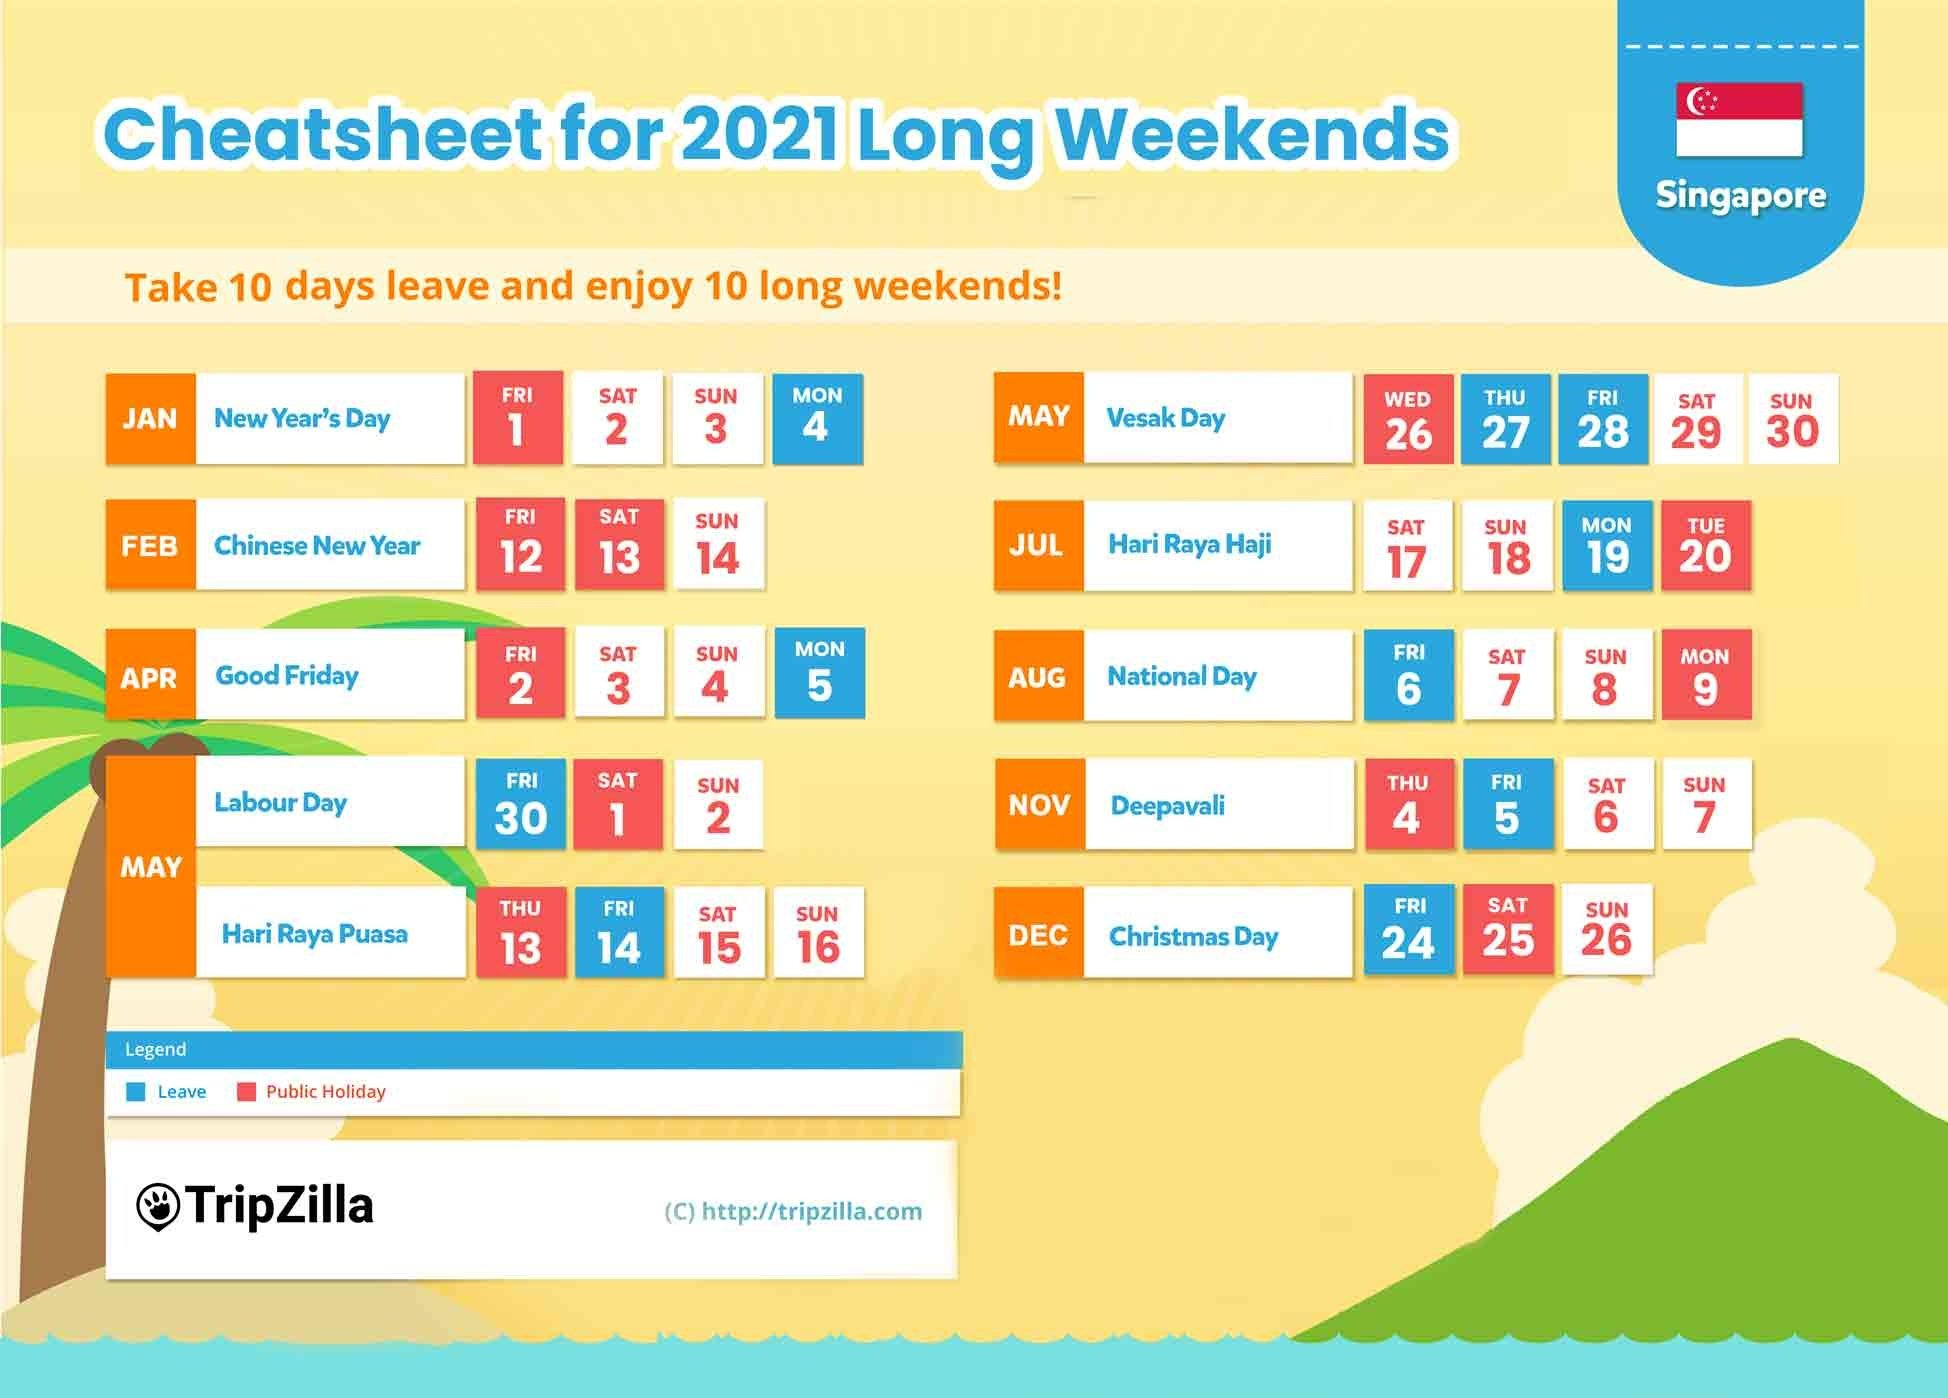 long weekends singapore 2021 cheatsheet